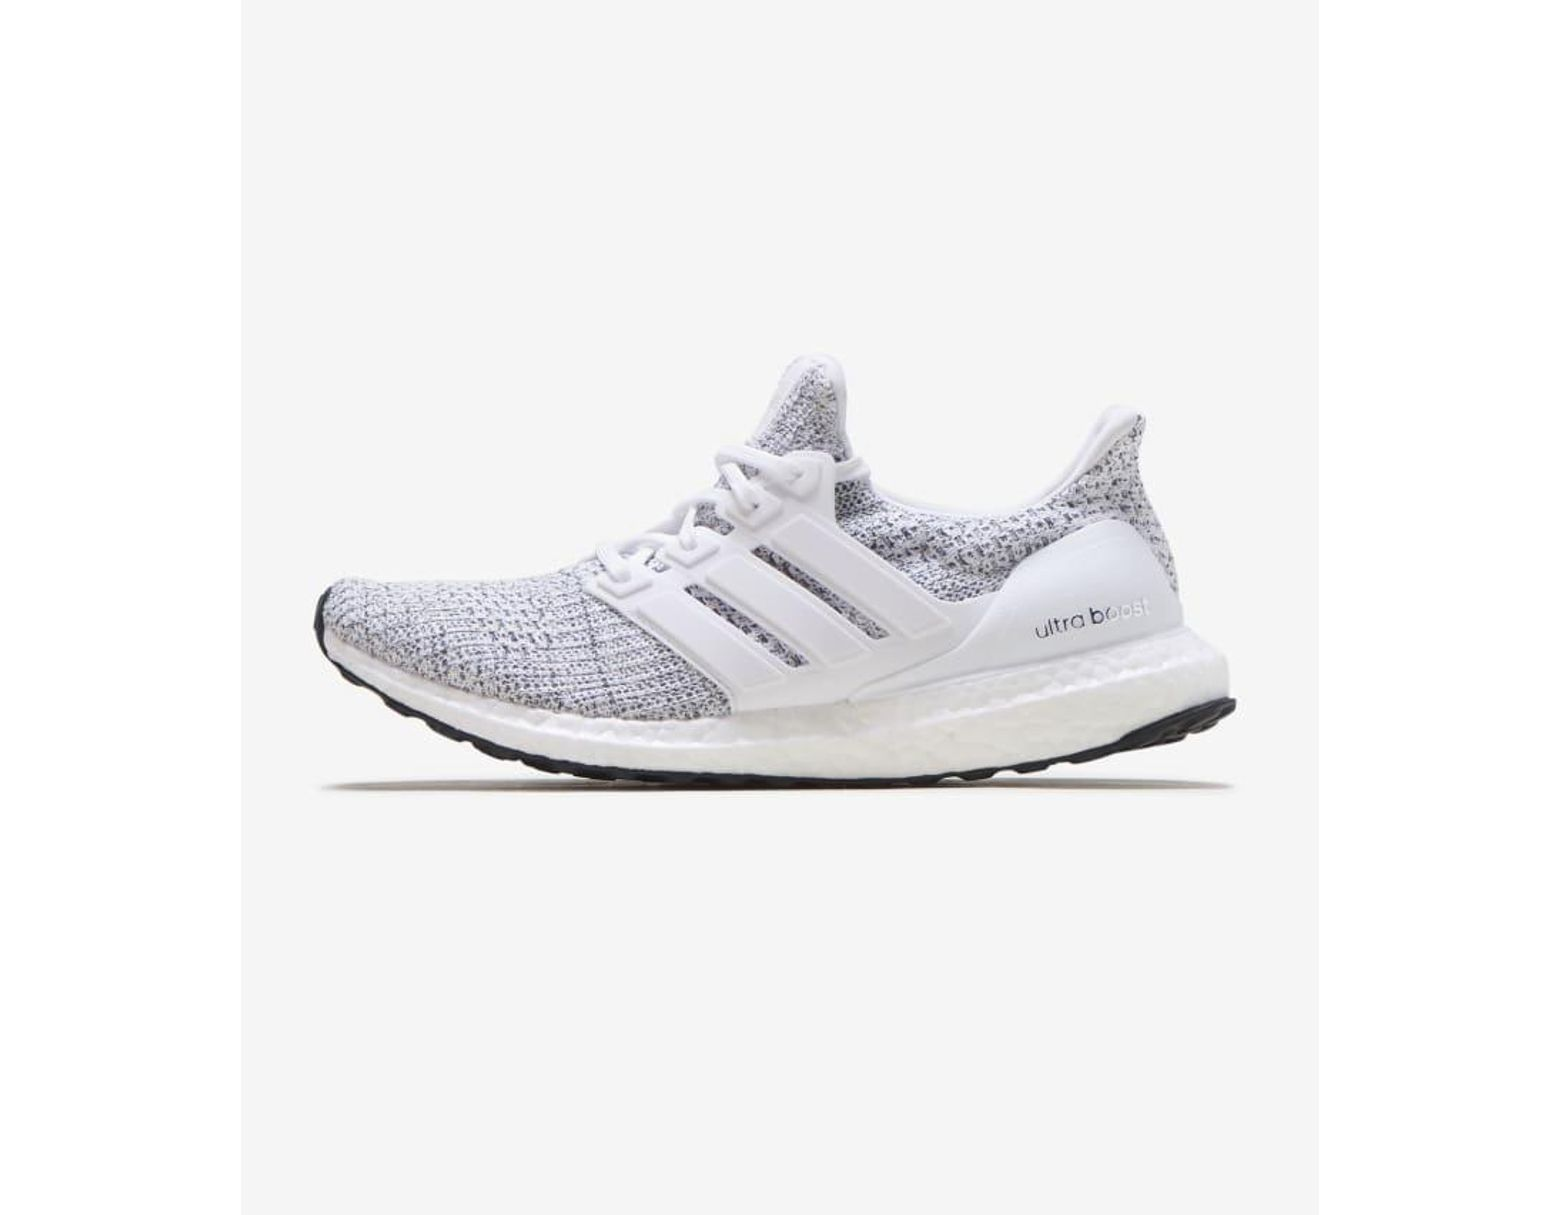 Fake Adidas Ultra Boost YouTube